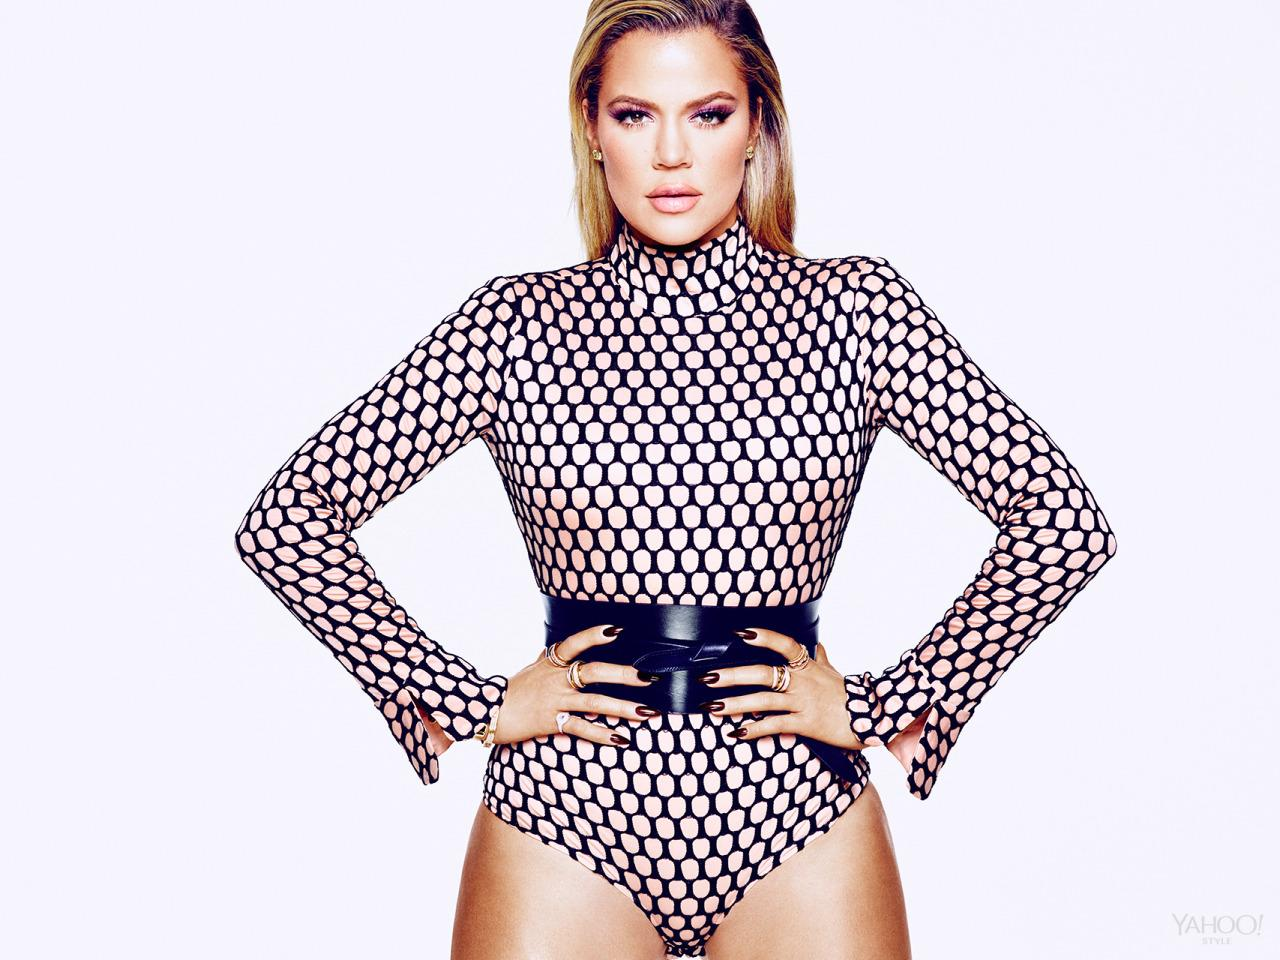 "<p>Khloé's reputation for the being the funniest member of the Kardashian Jenner clan is well deserved. ""Sometimes I talk too much. I'm just … very honest,"" she says. ""I've also had people be like 'Oh my God, you're so funny, will you tell me a joke?' And I'm like 'I'm not Kathy Griffin!' As much as I wish I could, I don't do stand-up."" </p><p>Véronique Leroy Blush & Black Meshed Bodysuit, $822, <a href=""http://openingceremony.us/ocsearch.asp?keyword=veronique%20leroy"">openingceremony.us</a><br /></p><p><i>Isabel Marant Dudley Leather Belt, $420, <a href=""http://www.net-a-porter.com/us/en/product/606590?cm_mmc=ProductSearchUS_PLA_c-_-Isabel%20Marant-_-Accessories-Belts-Wide-_-83331735874_606590-304&gclid=CJaCsbTD6sgCFYkWHwodttUGUg"">net-a-porter.com</a><br />SHAY Baugette Orbit Ring in 18k Gold and Diamonds,$7,560, <br /><a href=""http://www.shayfinejewelry.com/"">shayfinejewelry.com</a><br />SHAY Essential Orbit Ring in 18k Gold and Diamond Orbit Ring, $5,460, <a href=""http://www.shayfinejewelry.com/"">shayfinejewelry.com</a><br />SHAY 5 Row Closed Mixed Diamond Ring, $7,140, <a href=""http://www.shayfinejewelry.com/"">shayfinejewelry.com</a><br />SHAY Essential Pave Link Barcelet, $16,380, <a href=""http://www.shayfinejewelry.com/"">shayfinejewelry.com</a><br />SHAY Essential Link Pavé ID Bracelet in 18K Gold and Diamonds, $10,080, <a href=""http://www.shayfinejewelry.com/"">shayfinejewelry.com</a><br />SHAY Triple Moving Diamond Bracelet in 18K Gold and Diamonds, $6,300, <a href=""http://www.shayfinejewelry.com/"">shayfinejewelry.com</a><br />SHAY Name Plate Bracelet with Diamond Trim set in 18k Gold, $5,880, <a href=""http://www.shayfinejewelry.com/"">shayfinejewelry.com</a></i></p>"